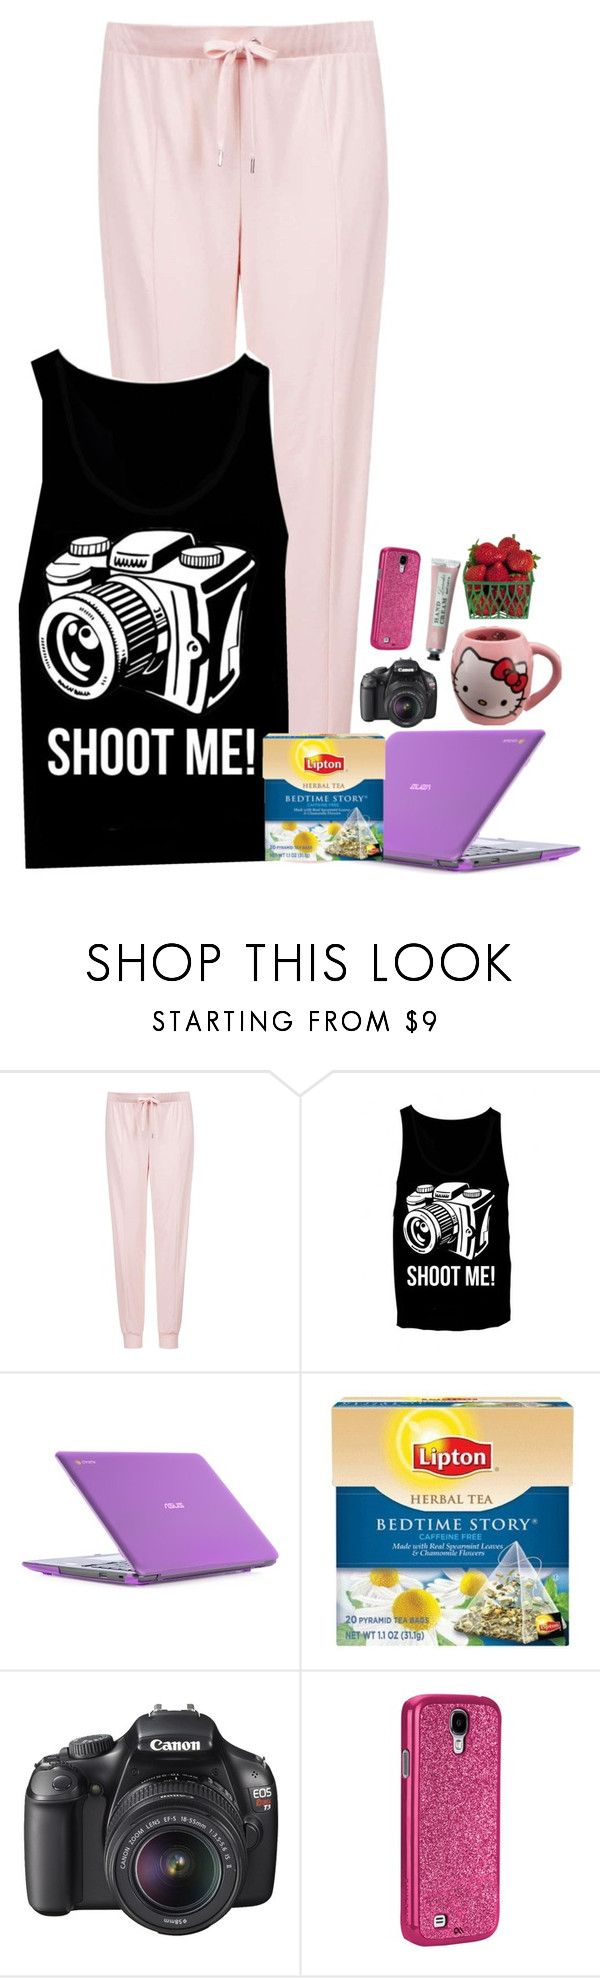 """Untitled #965"" by emmzizleez888 ❤ liked on Polyvore featuring Topshop, ASUS, Lipton, Canon, Hello Kitty, AG Adriano Goldschmied and vintage"